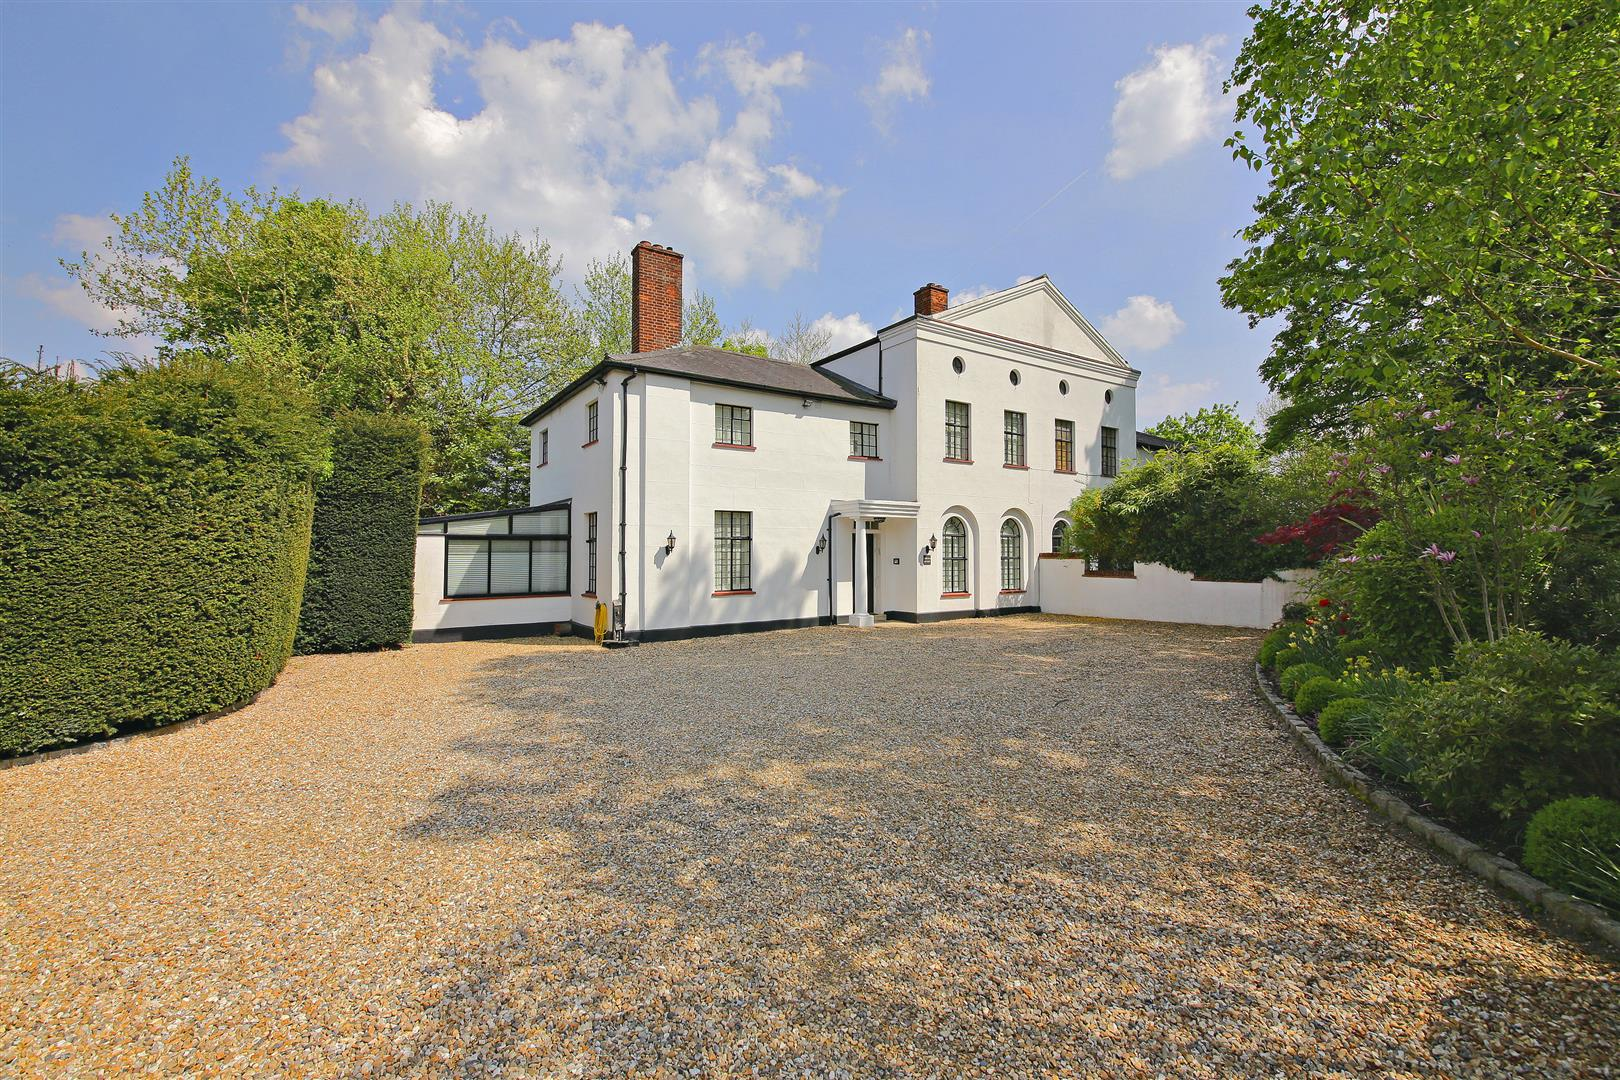 4 bed to rent - (Property Image 1)